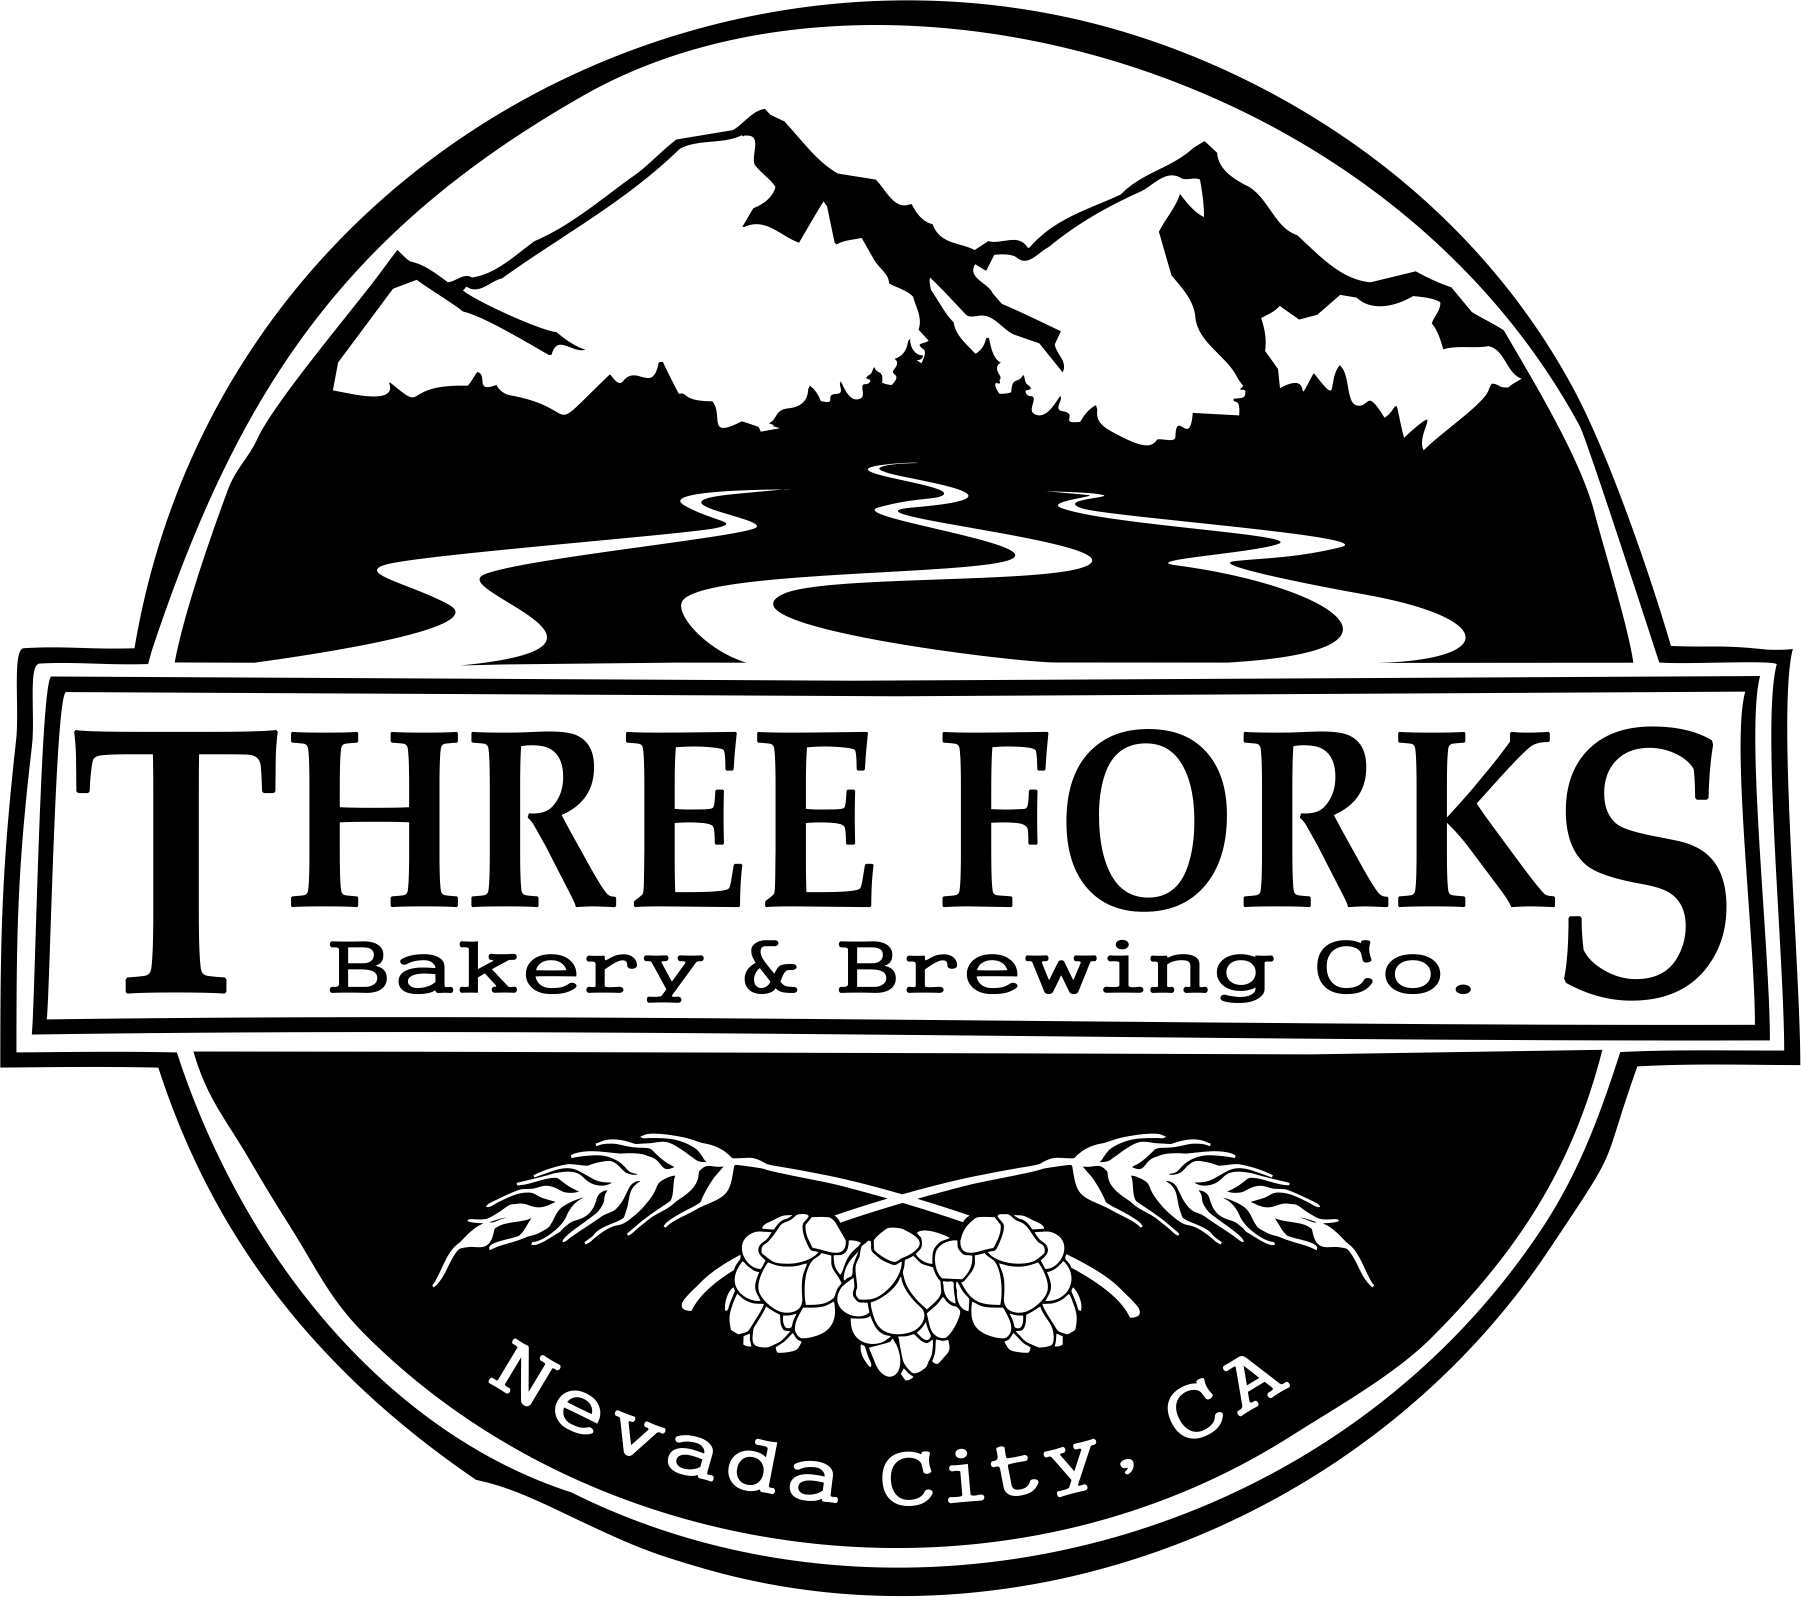 Three Forks Bakery and Brewing Co. will be baking fresh made Cinnamon Rolls, Scones and Muffins the morning of Gourmet Gravel. -